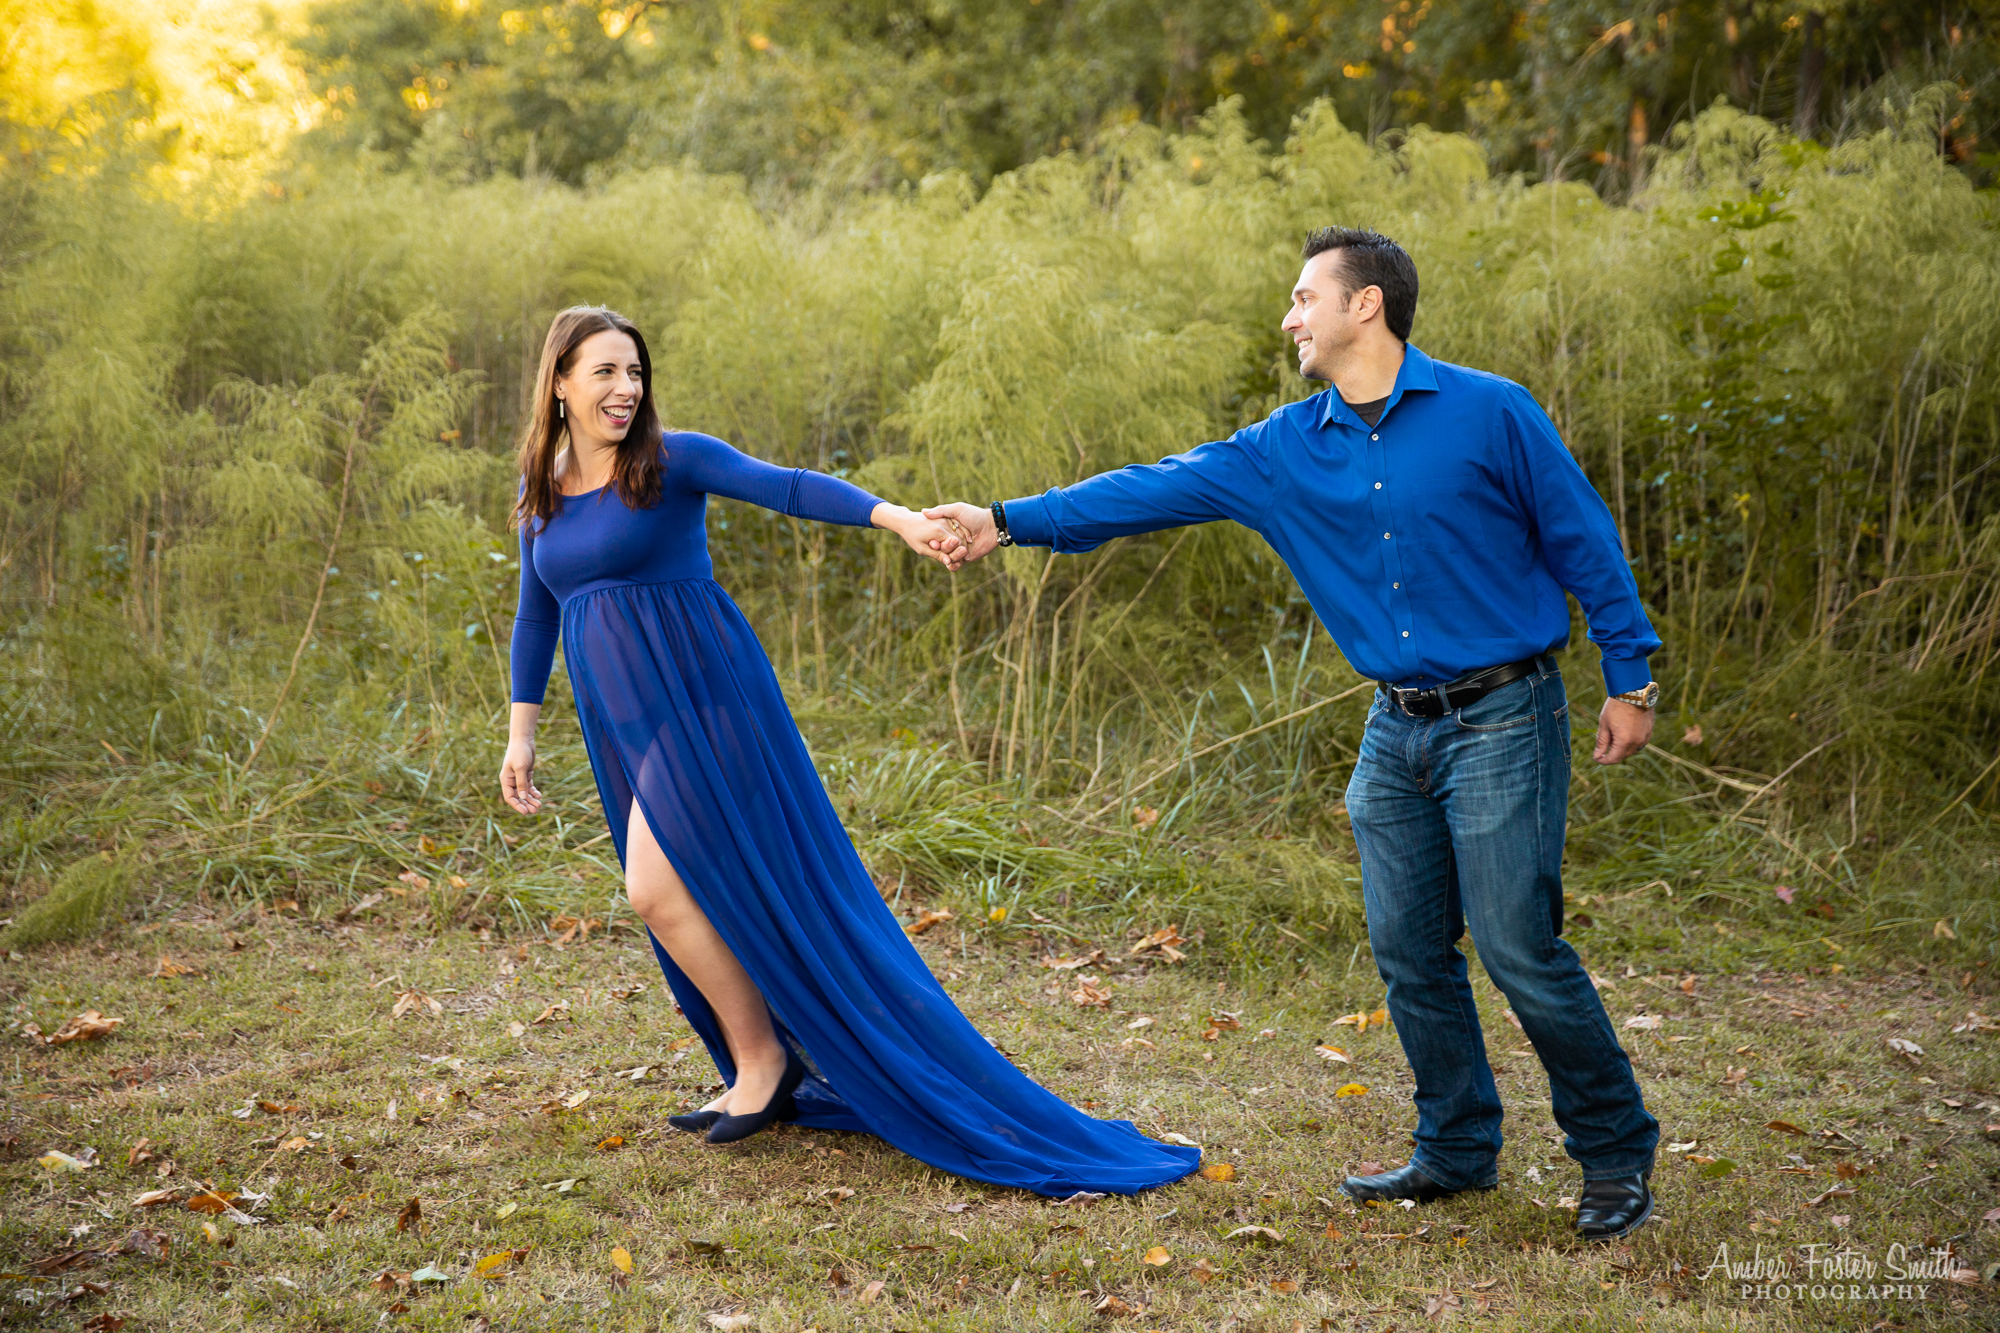 Pregnant woman in a long blue dress holding a mans hand and pulling him